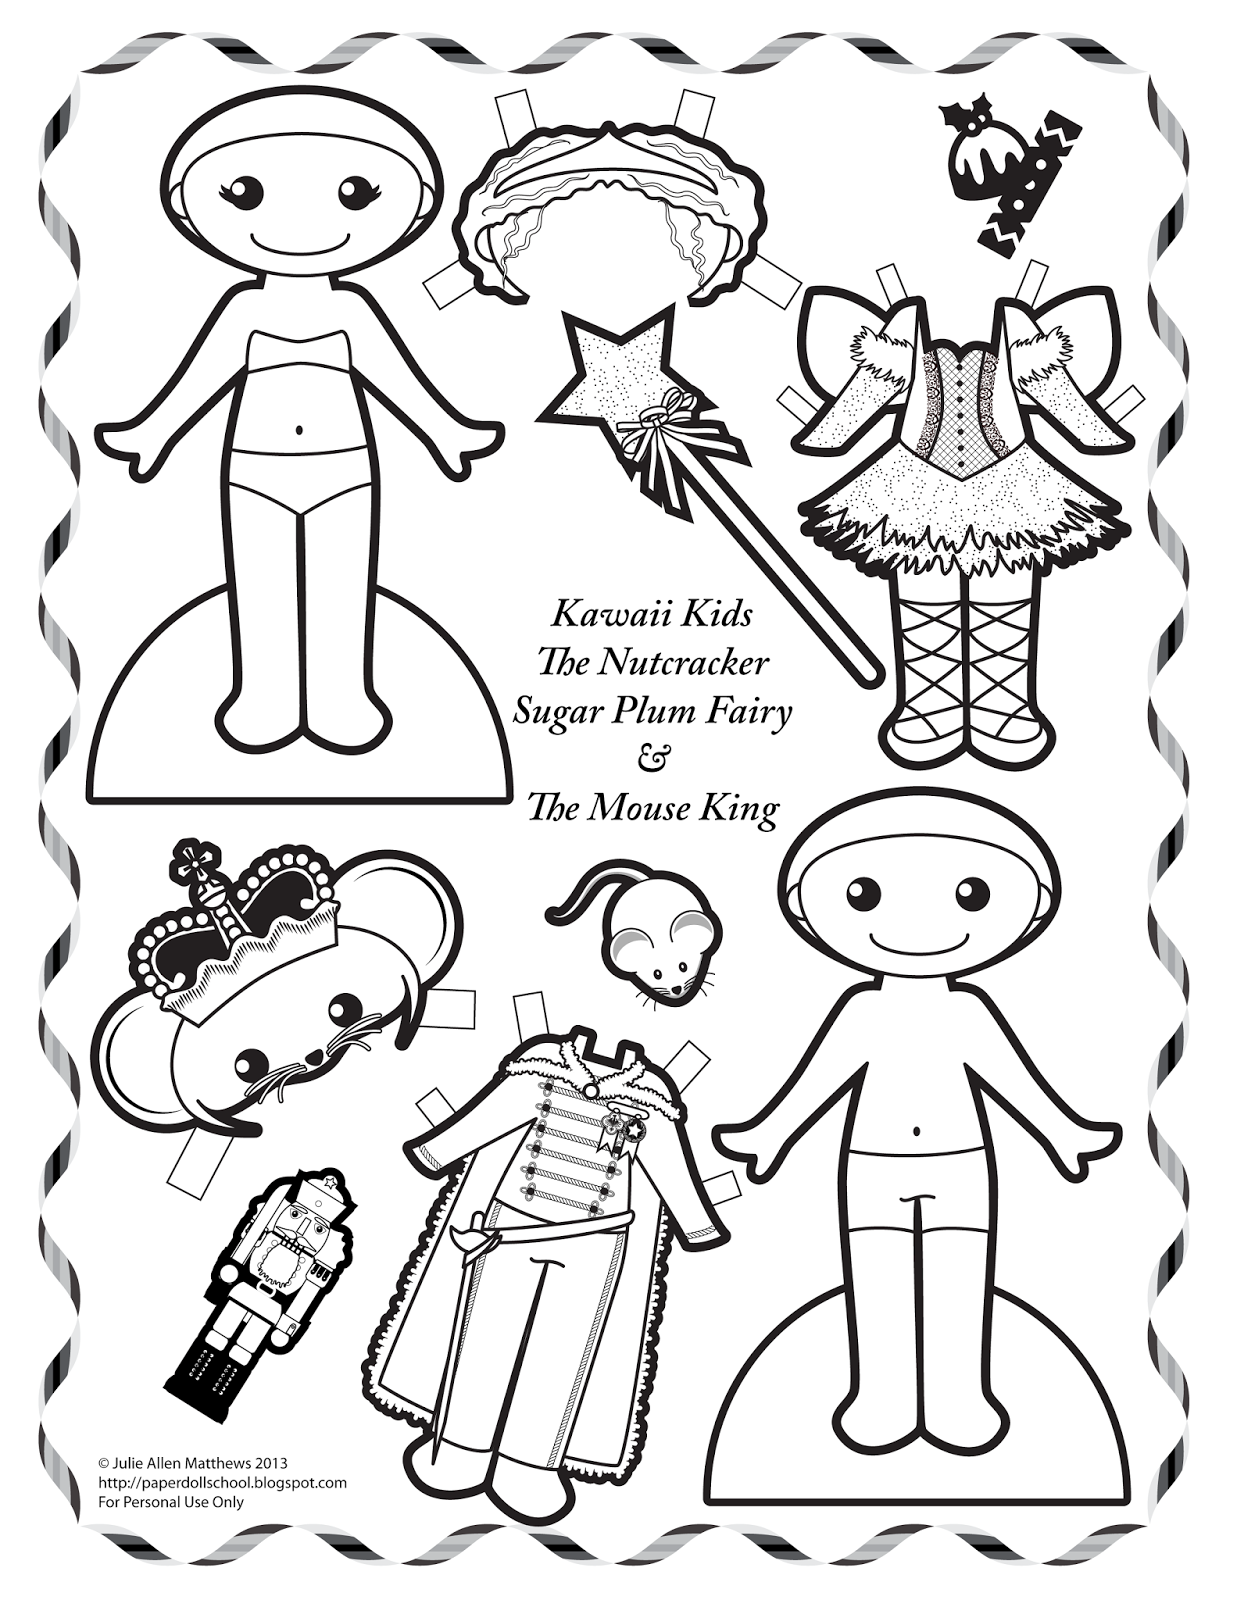 sugar plum fairies coloring pages - photo#21